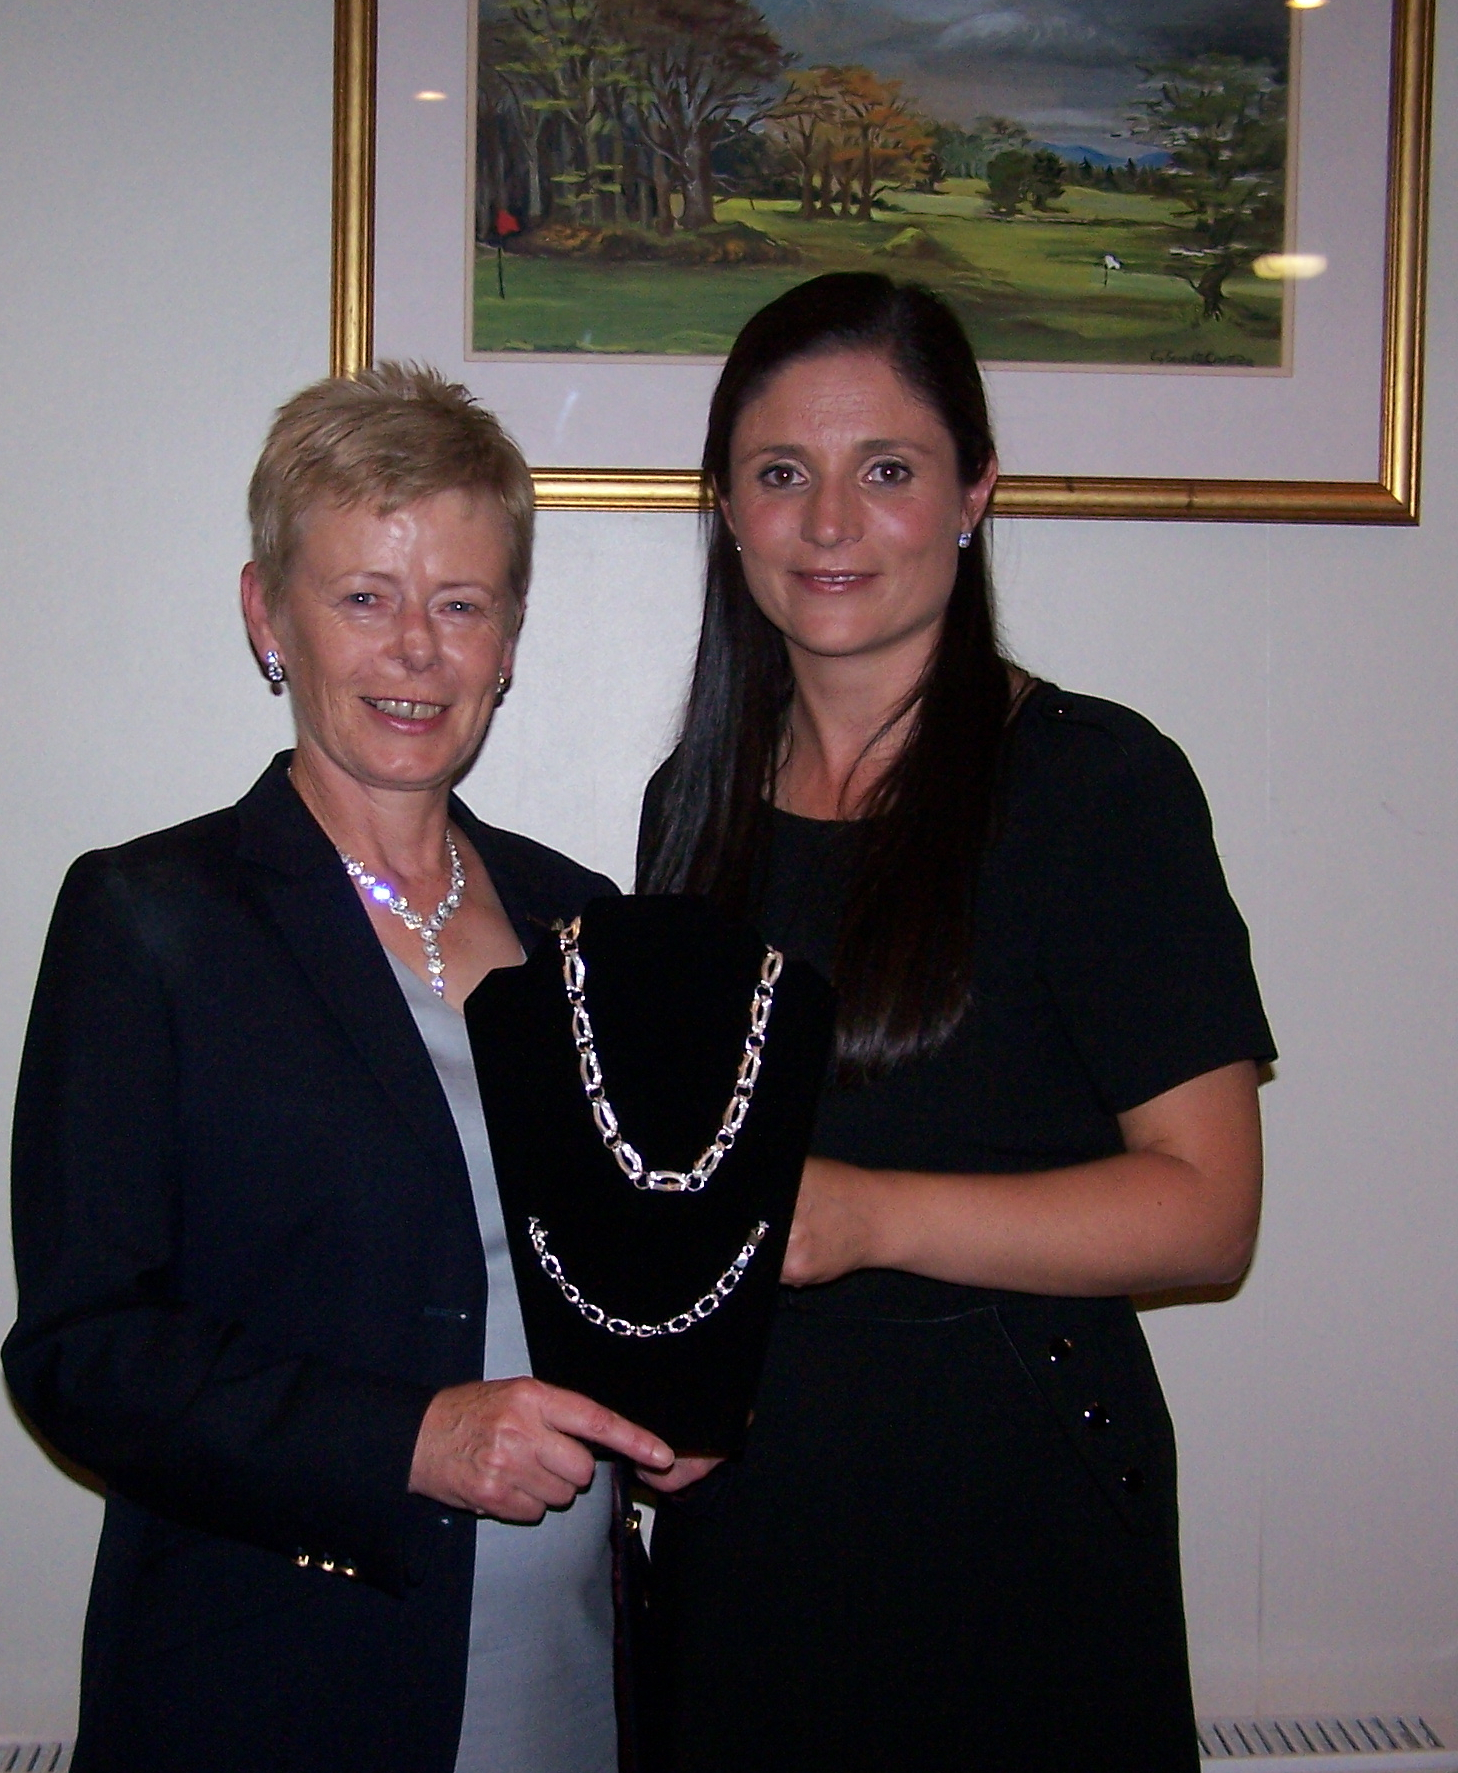 Una Marsden winner of Lady Captain Stephanie McNiff's prize